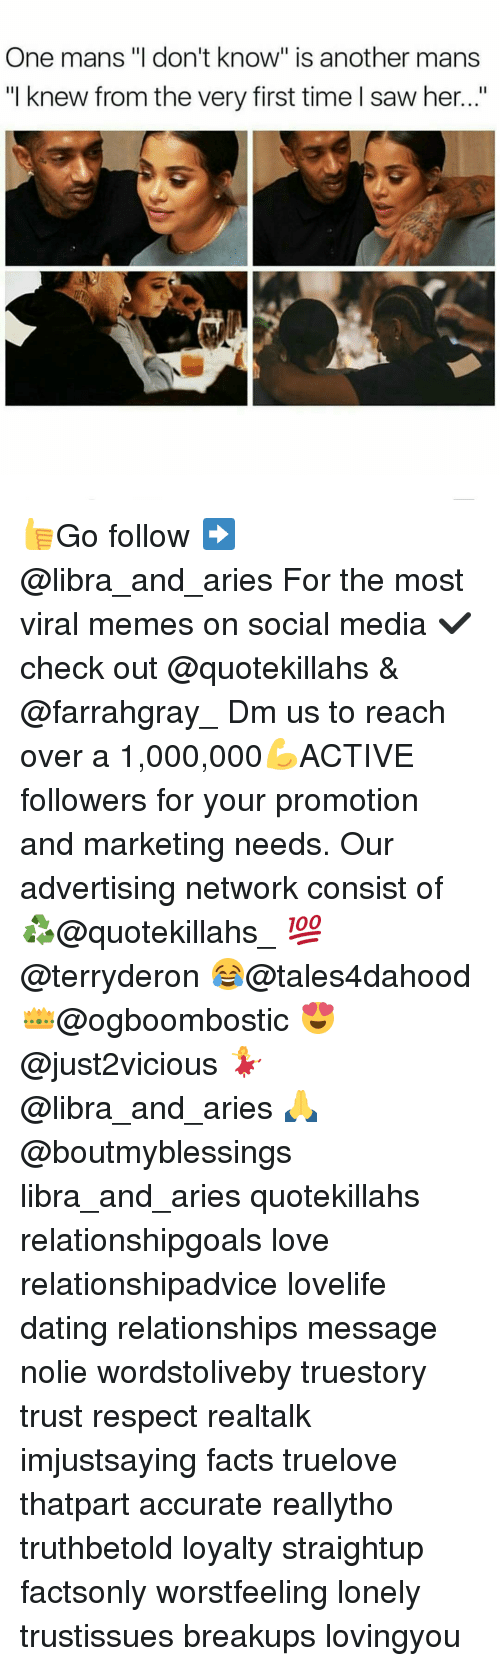 "Social Media, Aries, and Libra: One mans ""I don't know"" is another mans  ""I knew from the very first time I saw her..."" 👍Go follow ➡@libra_and_aries For the most viral memes on social media ✔check out @quotekillahs & @farrahgray_ Dm us to reach over a 1,000,000💪ACTIVE followers for your promotion and marketing needs. Our advertising network consist of ♻@quotekillahs_ 💯@terryderon 😂@tales4dahood 👑@ogboombostic 😍@just2vicious 💃@libra_and_aries 🙏@boutmyblessings libra_and_aries quotekillahs relationshipgoals love relationshipadvice lovelife dating relationships message nolie wordstoliveby truestory trust respect realtalk imjustsaying facts truelove thatpart accurate reallytho truthbetold loyalty straightup factsonly worstfeeling lonely trustissues breakups lovingyou"